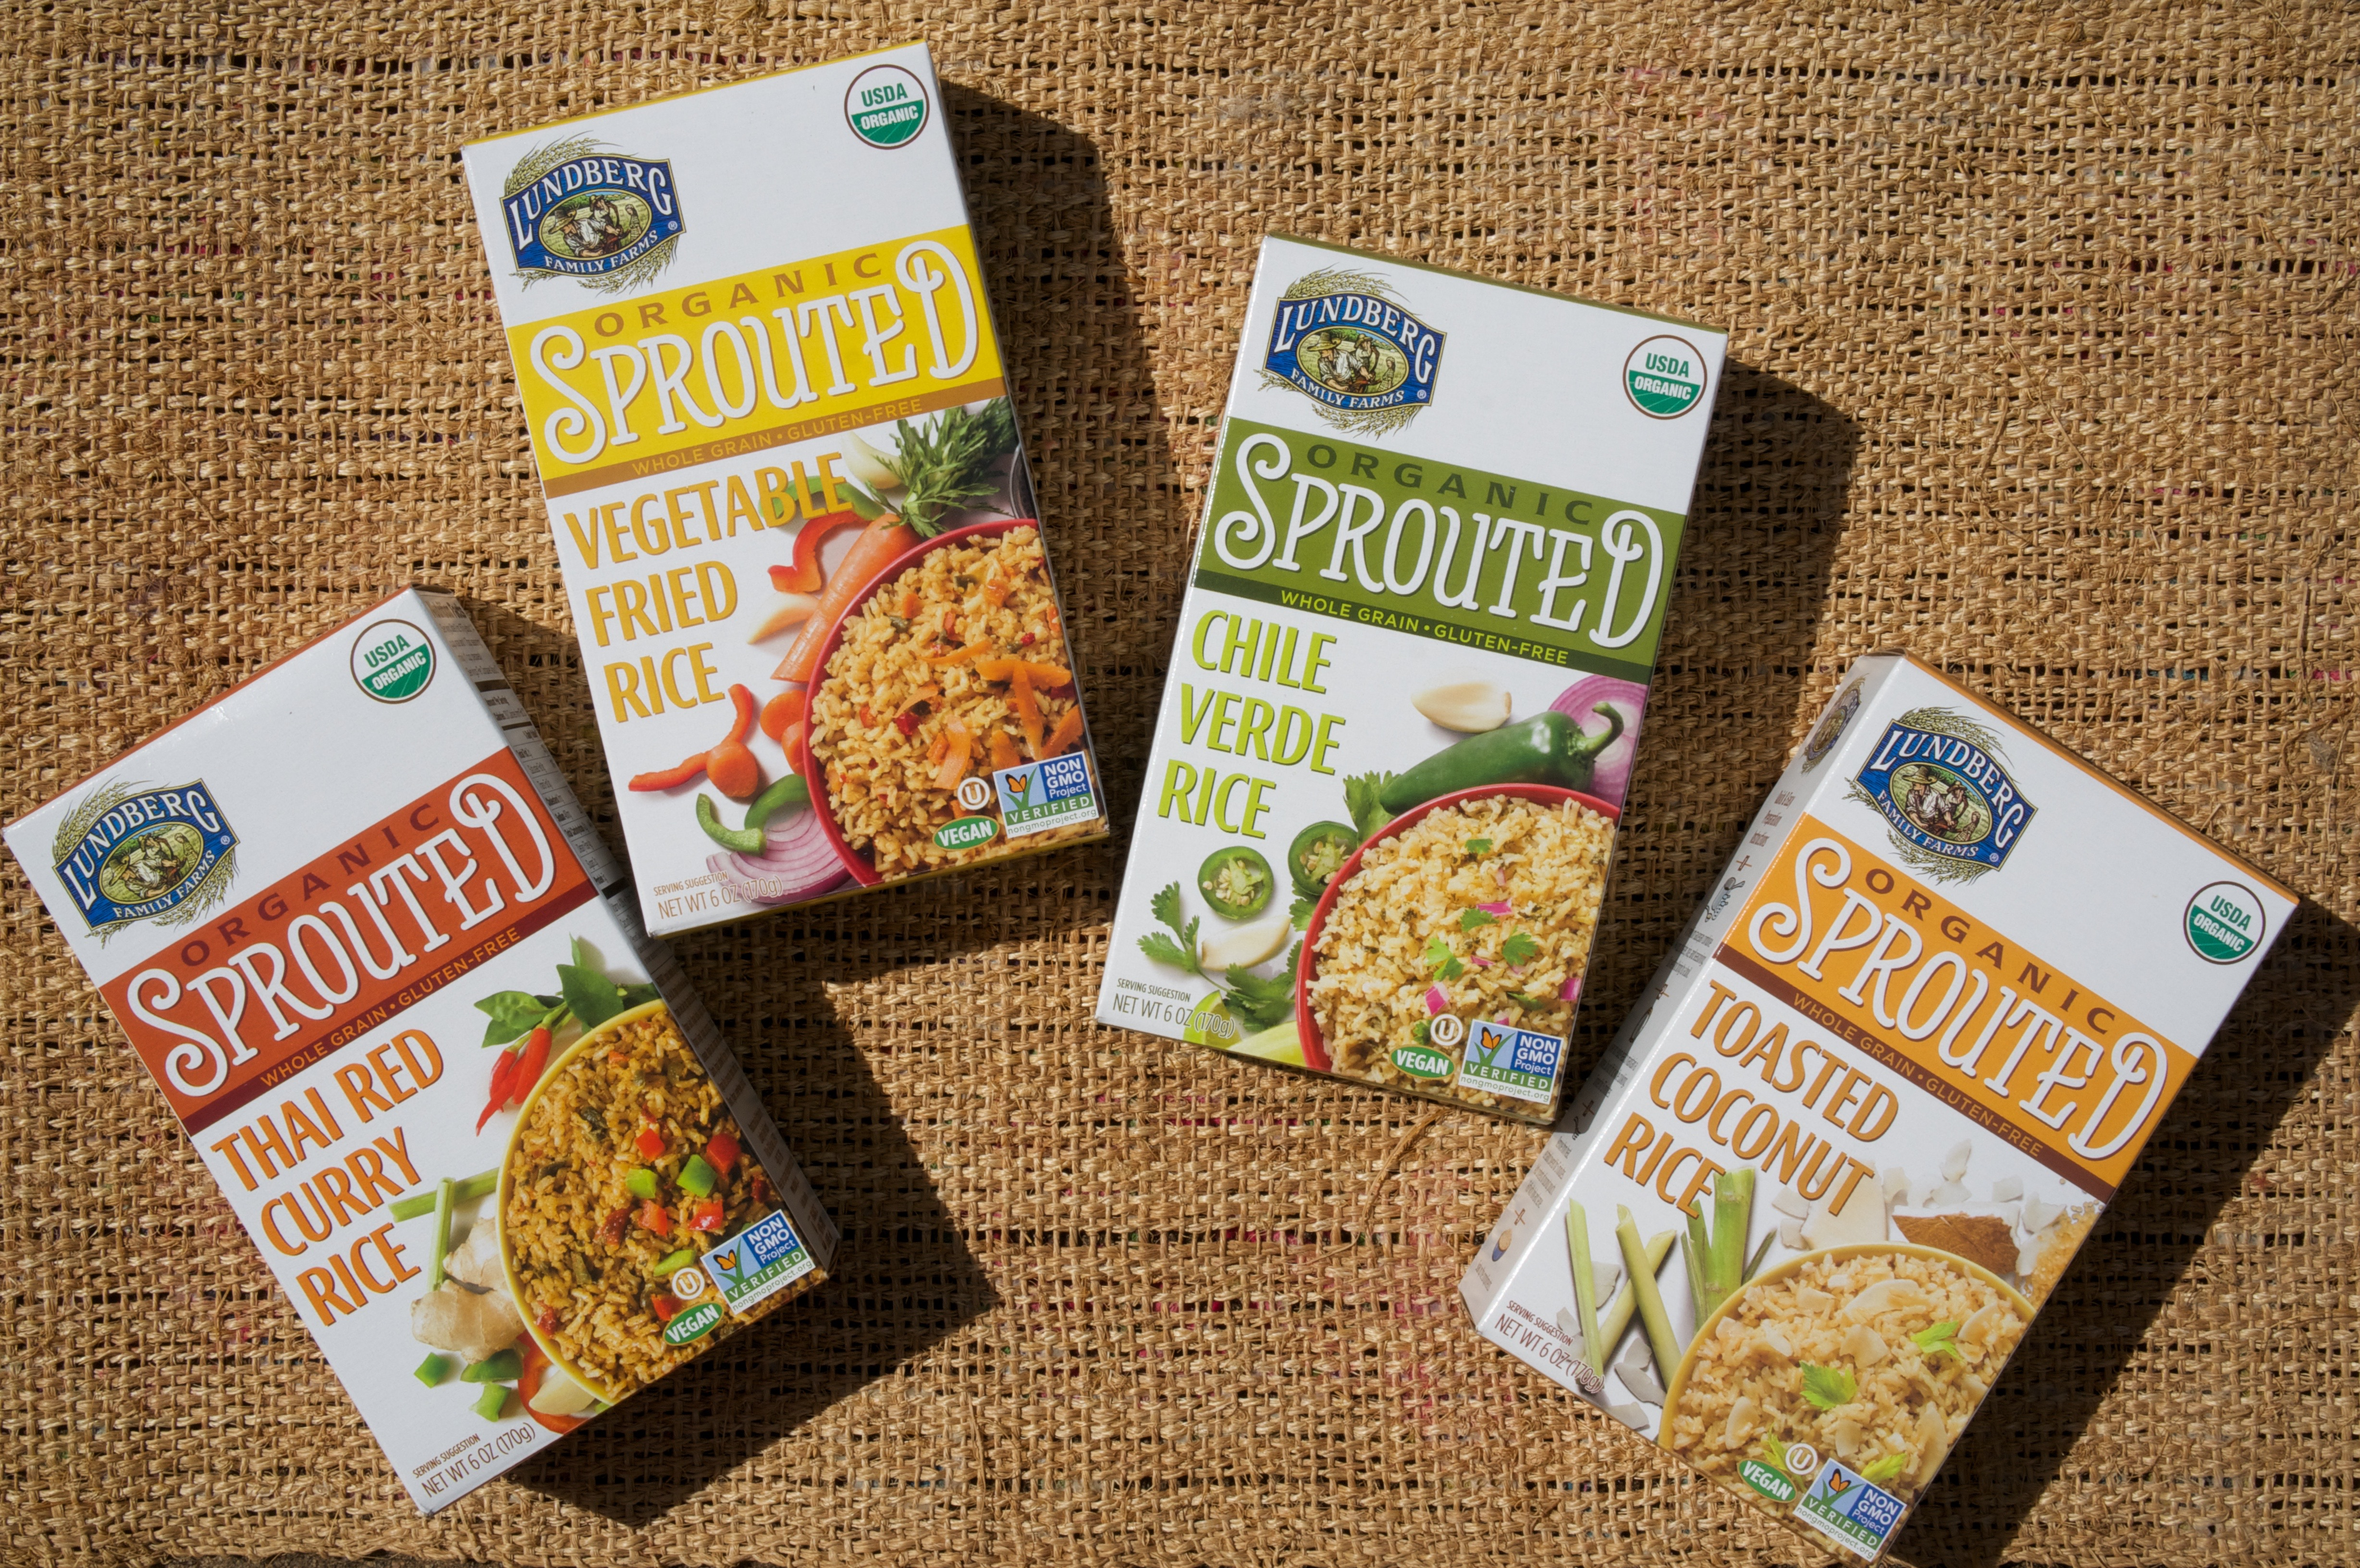 Lundberg Organic Sprouted Rice